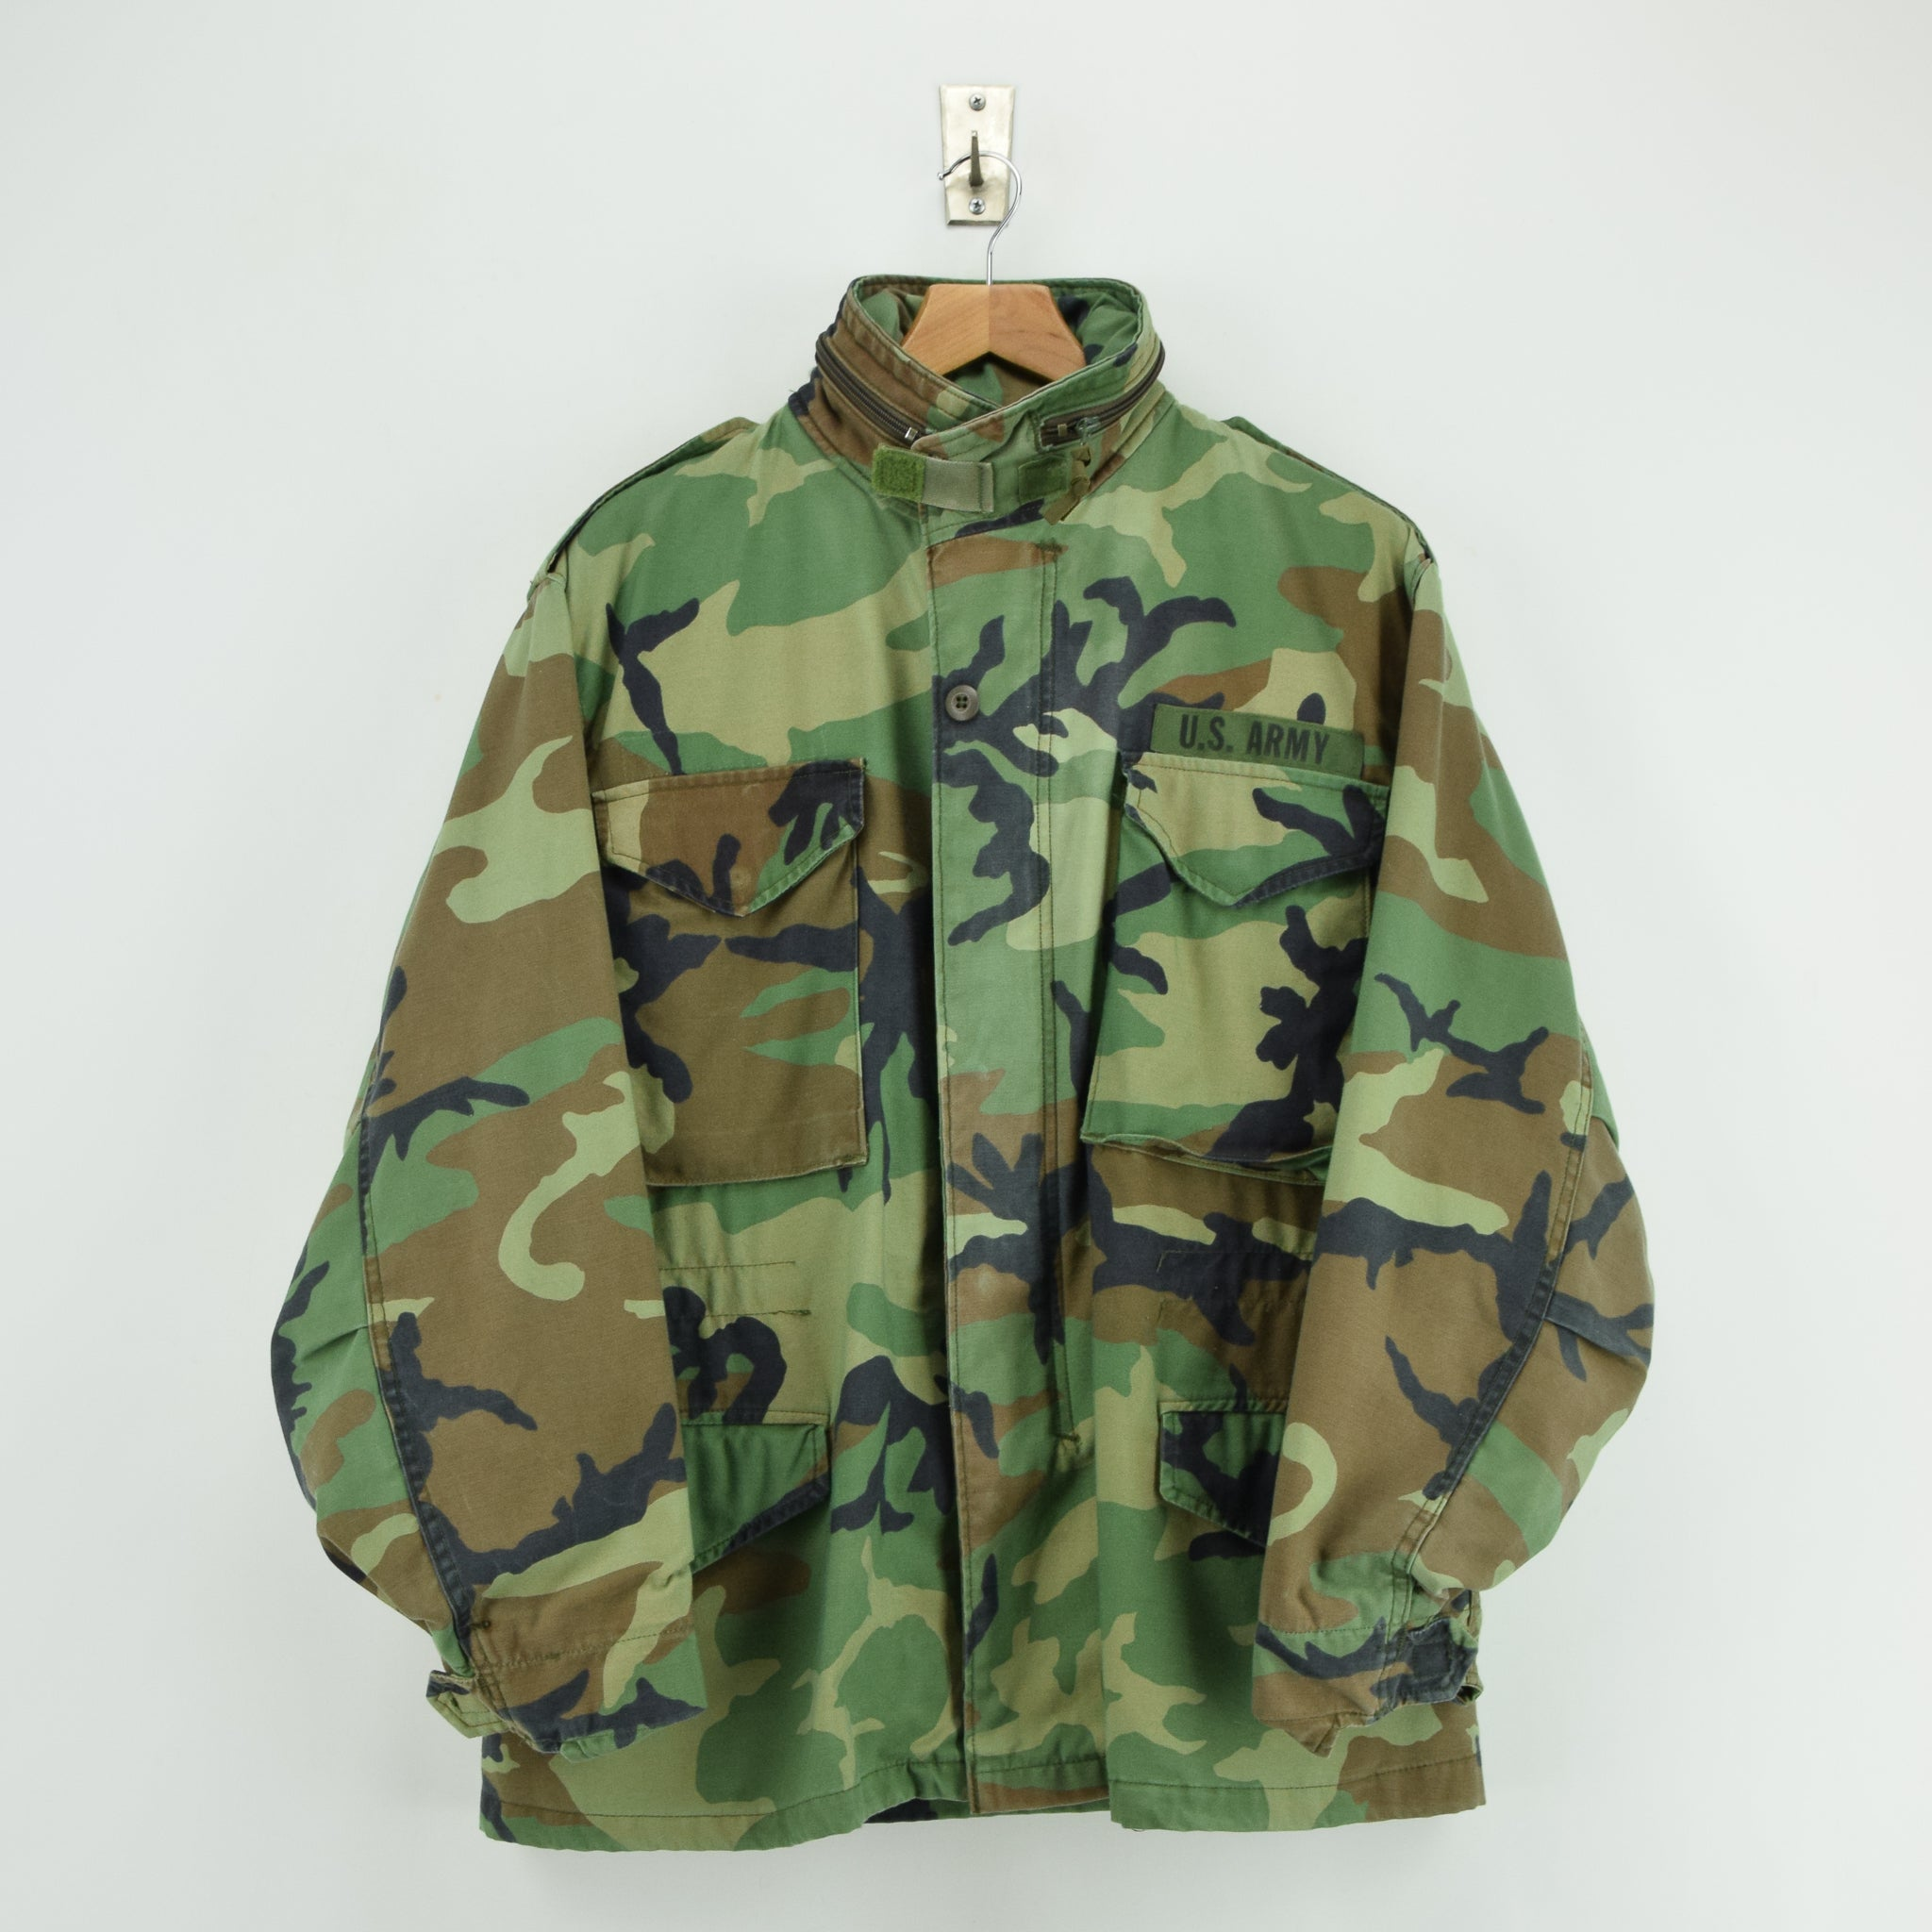 Vintage 90s M-65 Woodland Camouflage Field Coat US Army Cotton Military Jacket M front